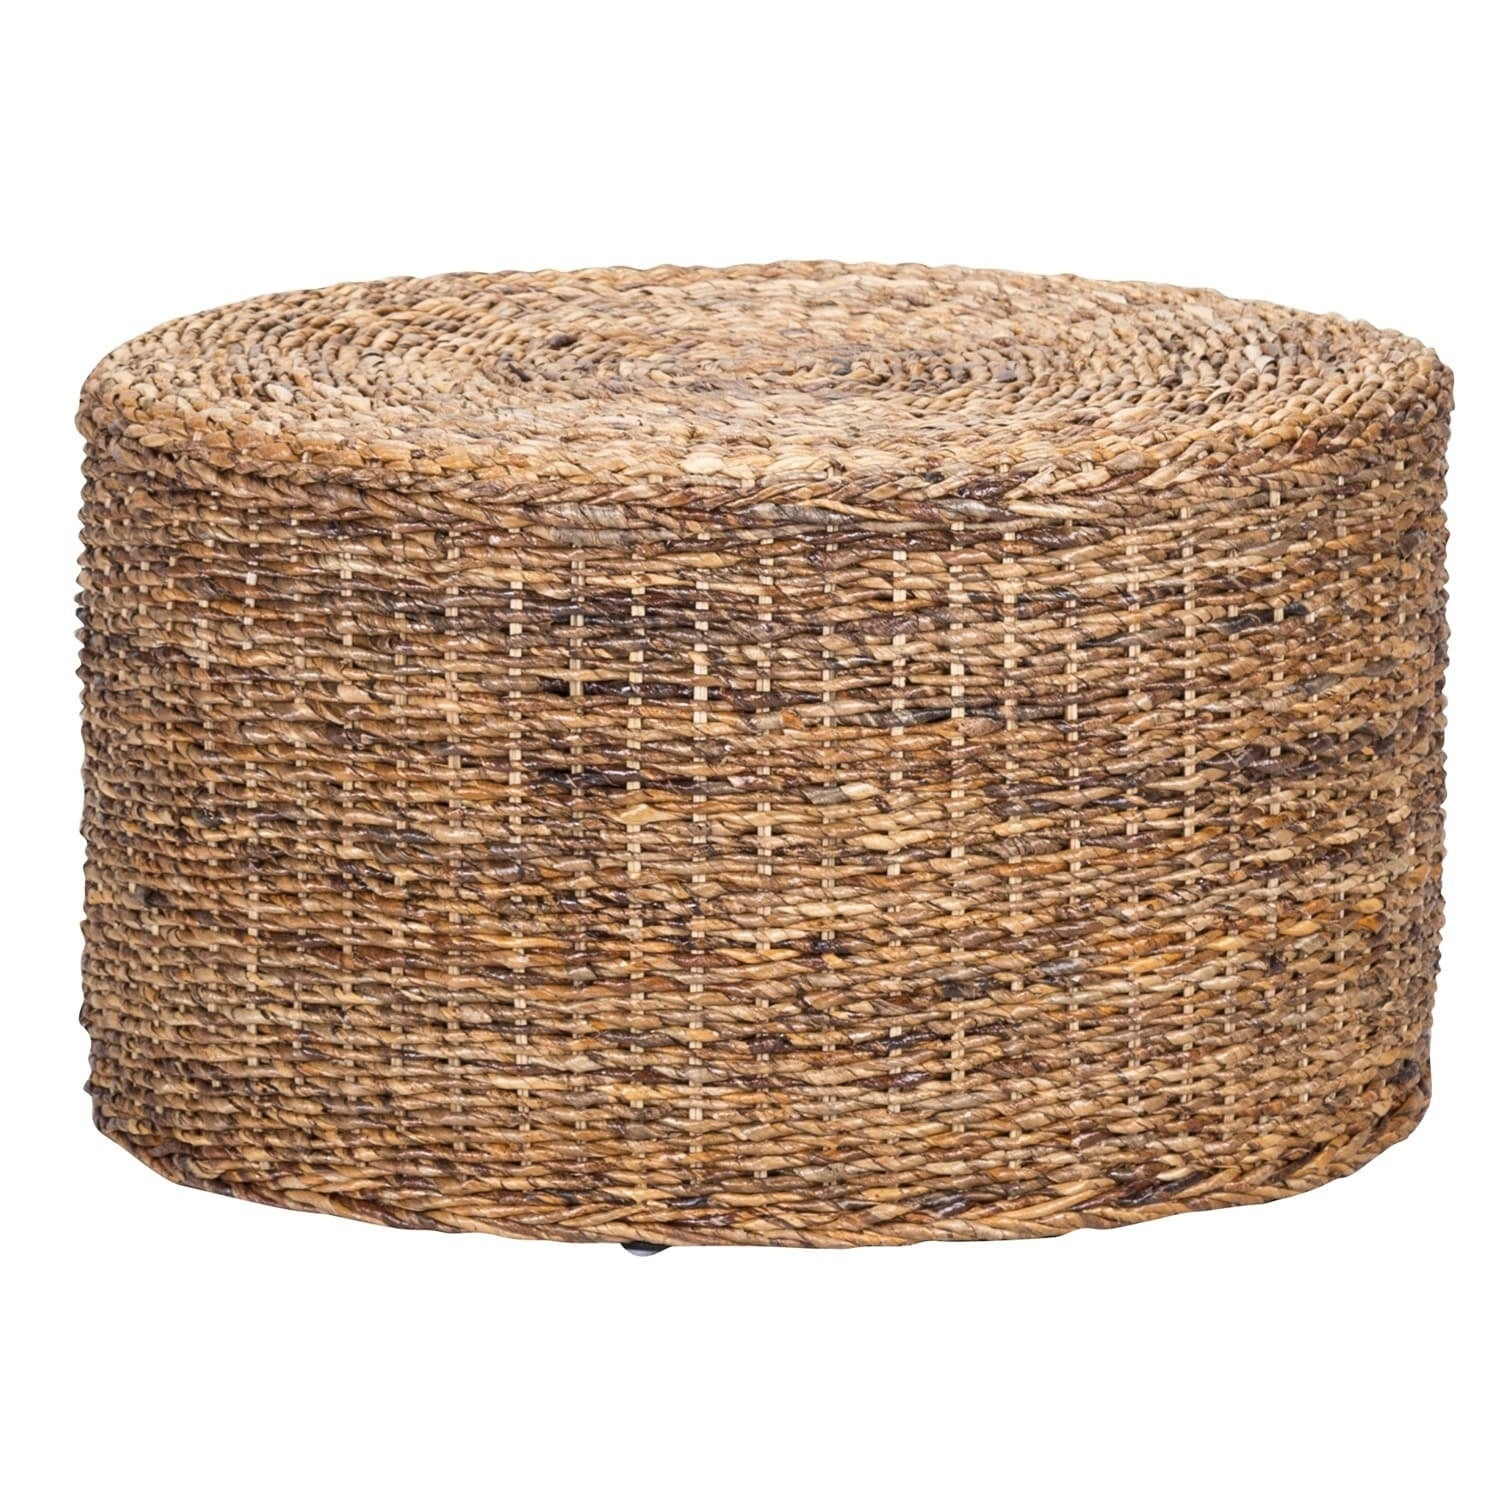 Ira Rattan Round Coffee Table By Kosas Home 18h X 32w 32d On Free Shipping Today 10813459